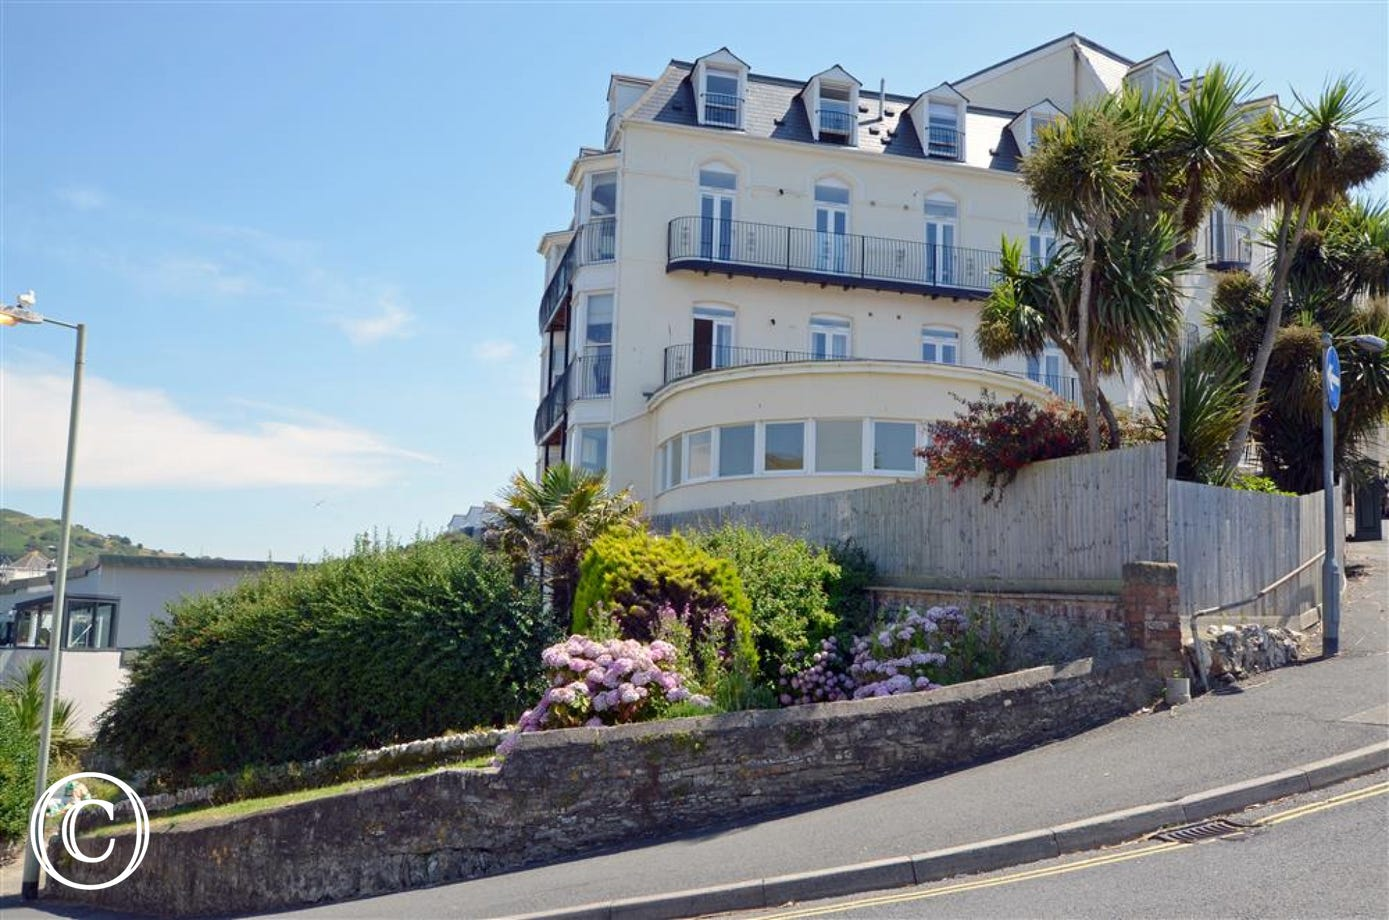 Balmoral is minutes from the sea, shops, bars and restaurants - a perfect location!